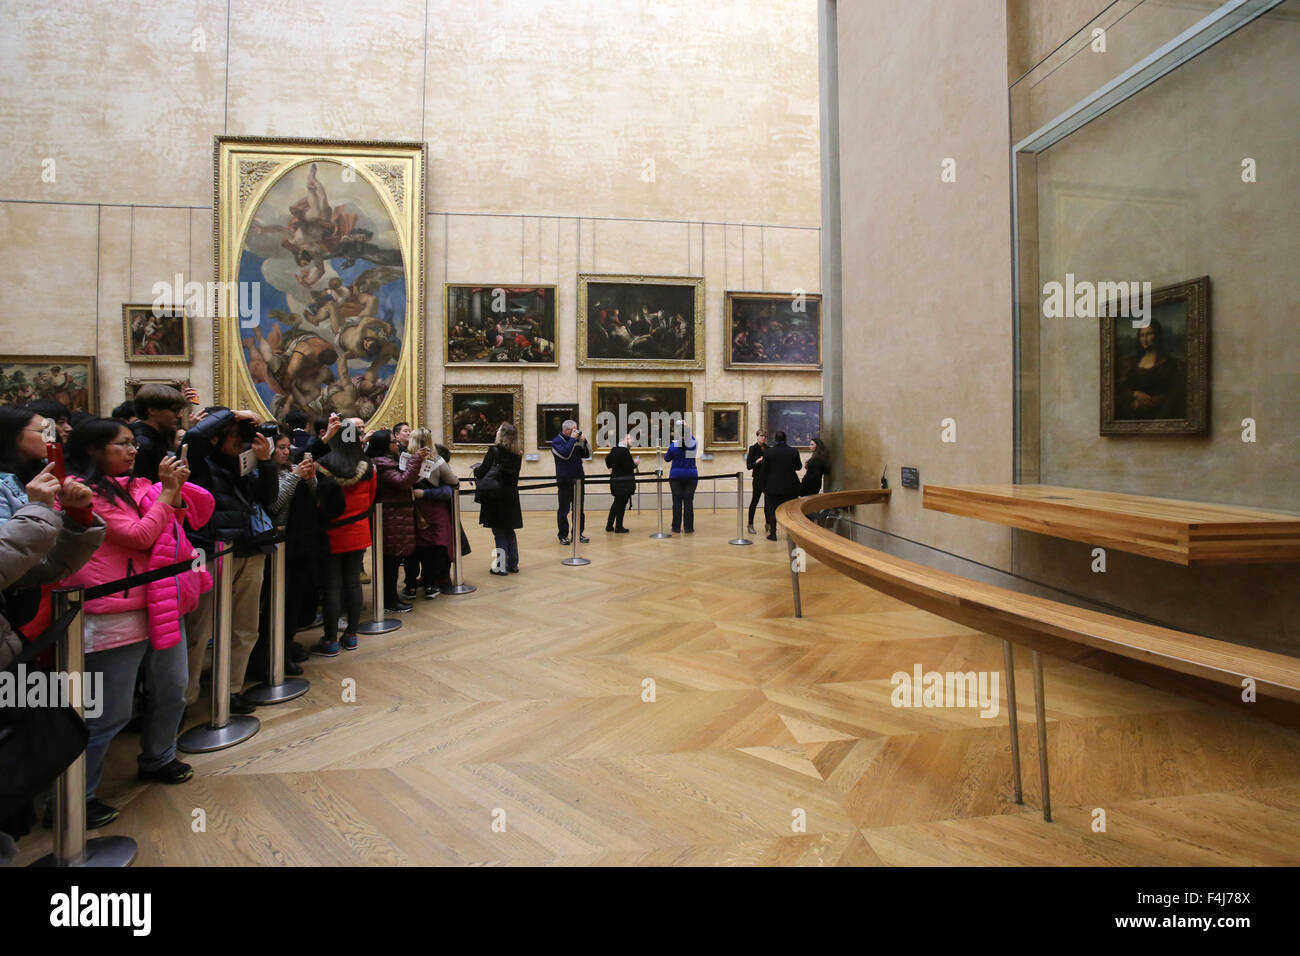 A crowd of tourists photographing the Mona Lisa portrait at the Louvre Museum, Paris, France, Euruope - Stock Image